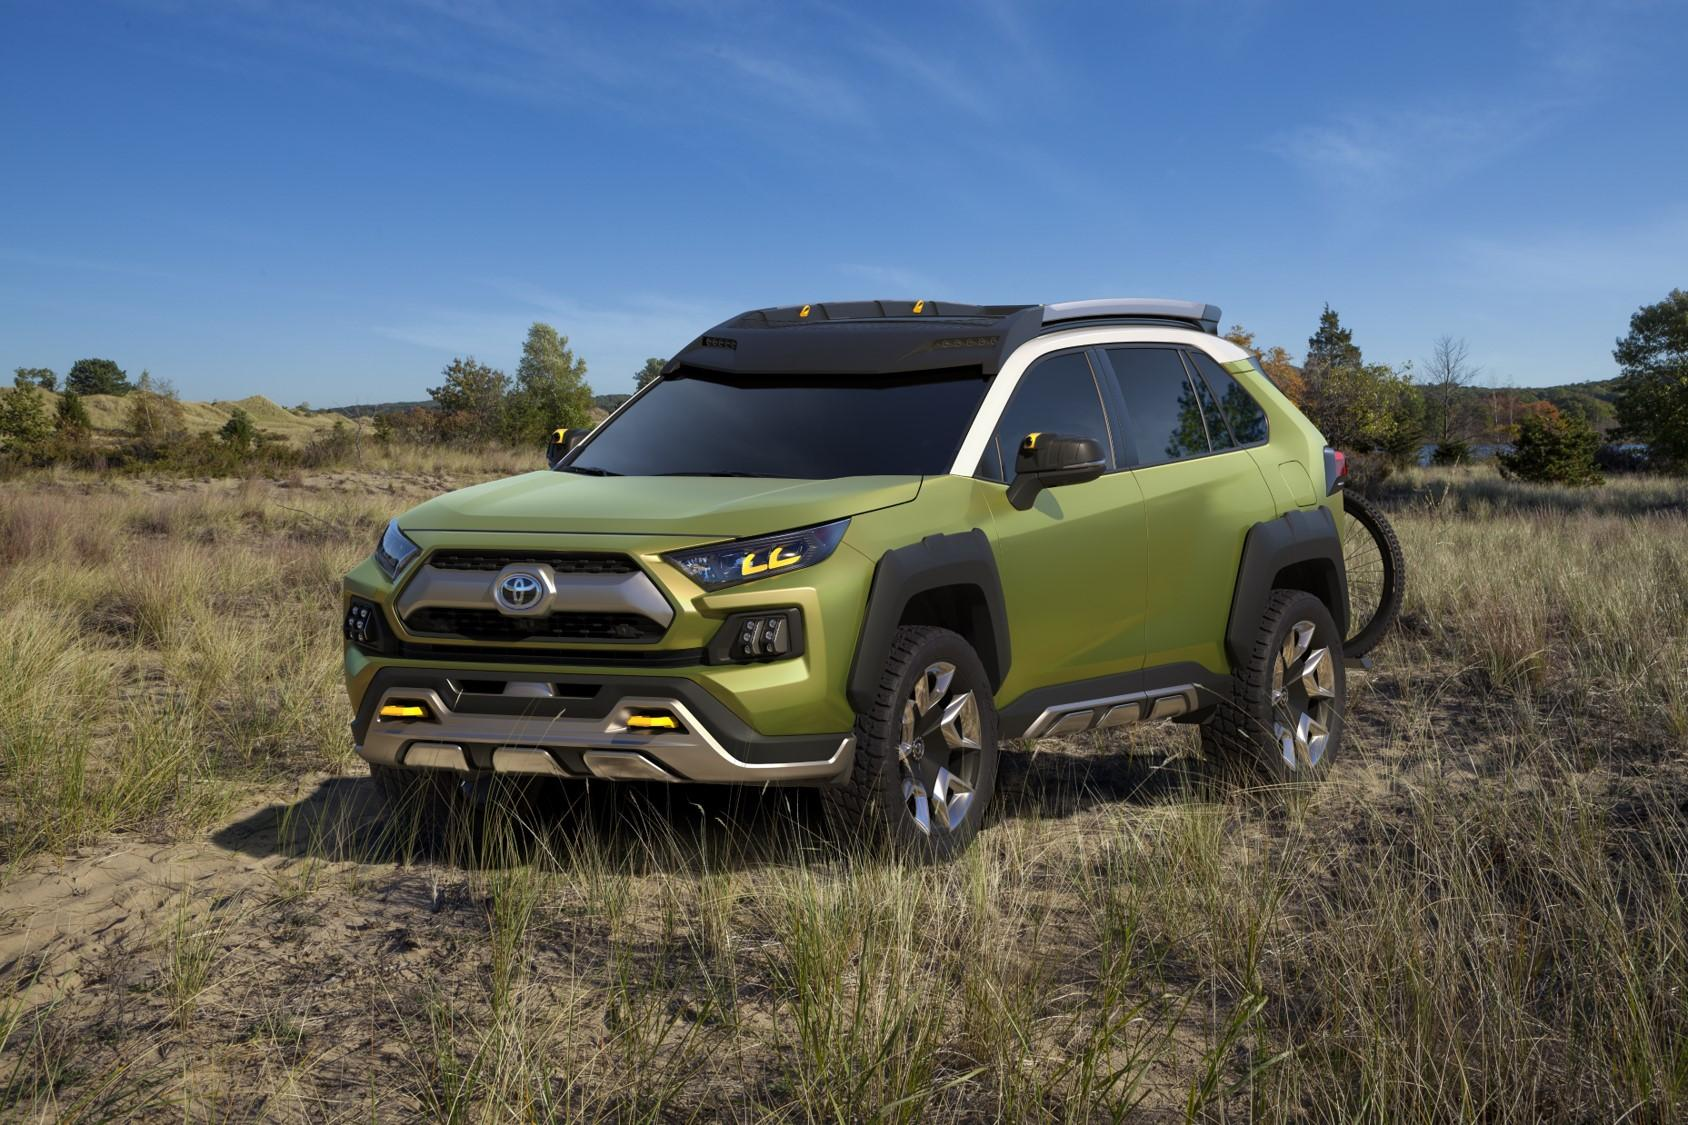 #ICYMI today - Future Toyota Adventure Concept - #FTAC - revealed from @LAAutoShow - more: https://t.co/VmwJYQcnlV https://t.co/iN8ELvq0Tk